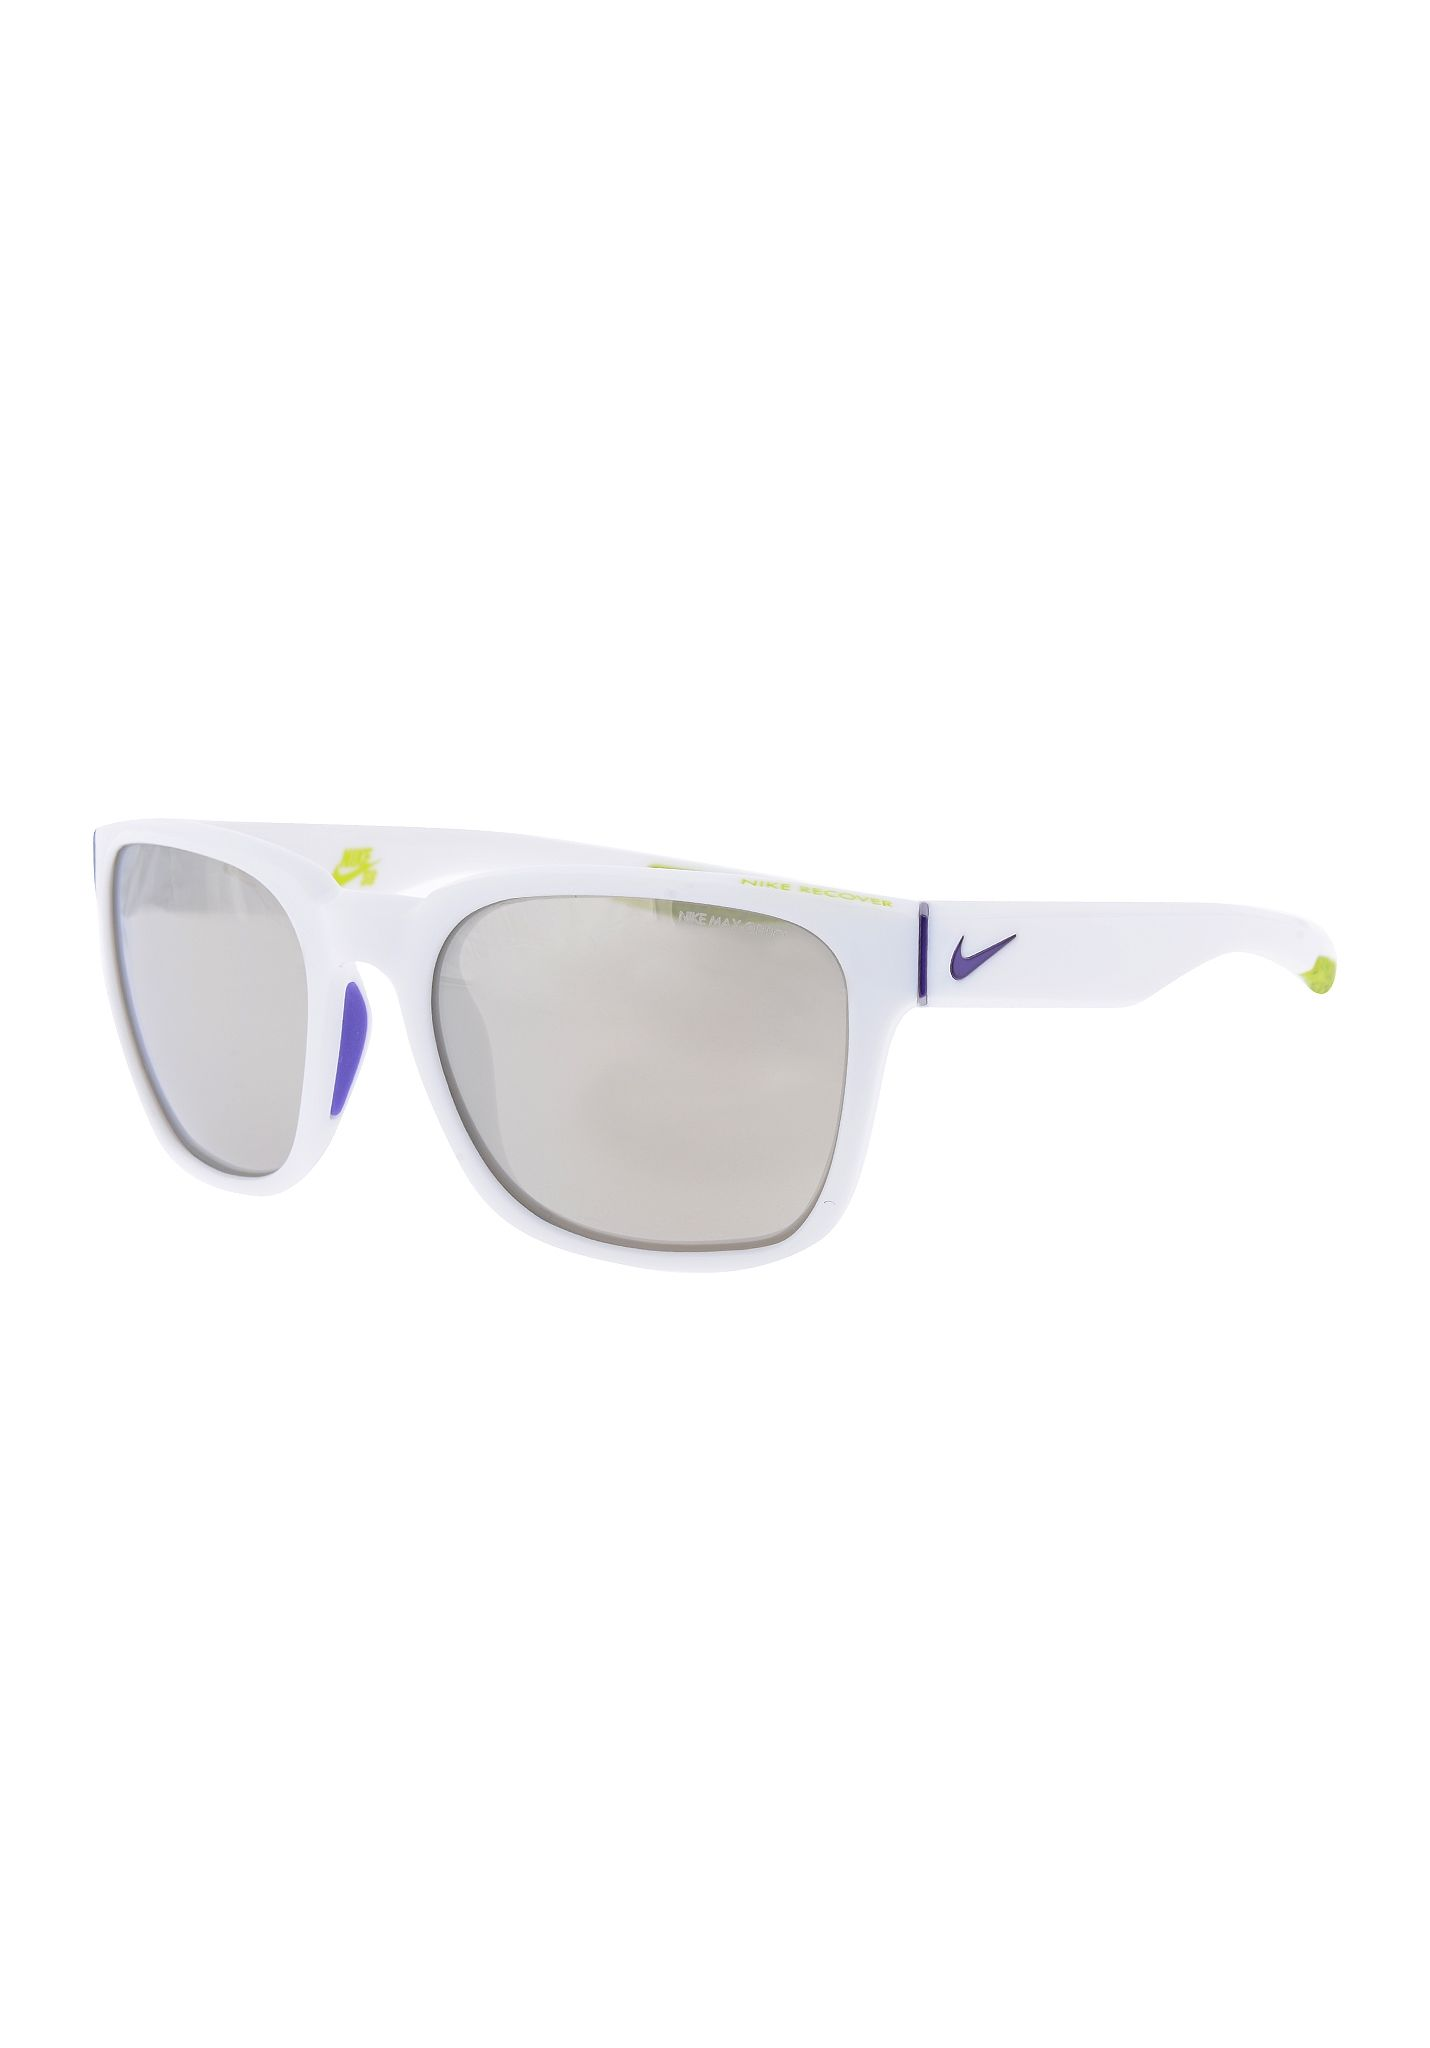 NIKE VISION Recover - Sonnenbrille - Weiß - Planet Sports